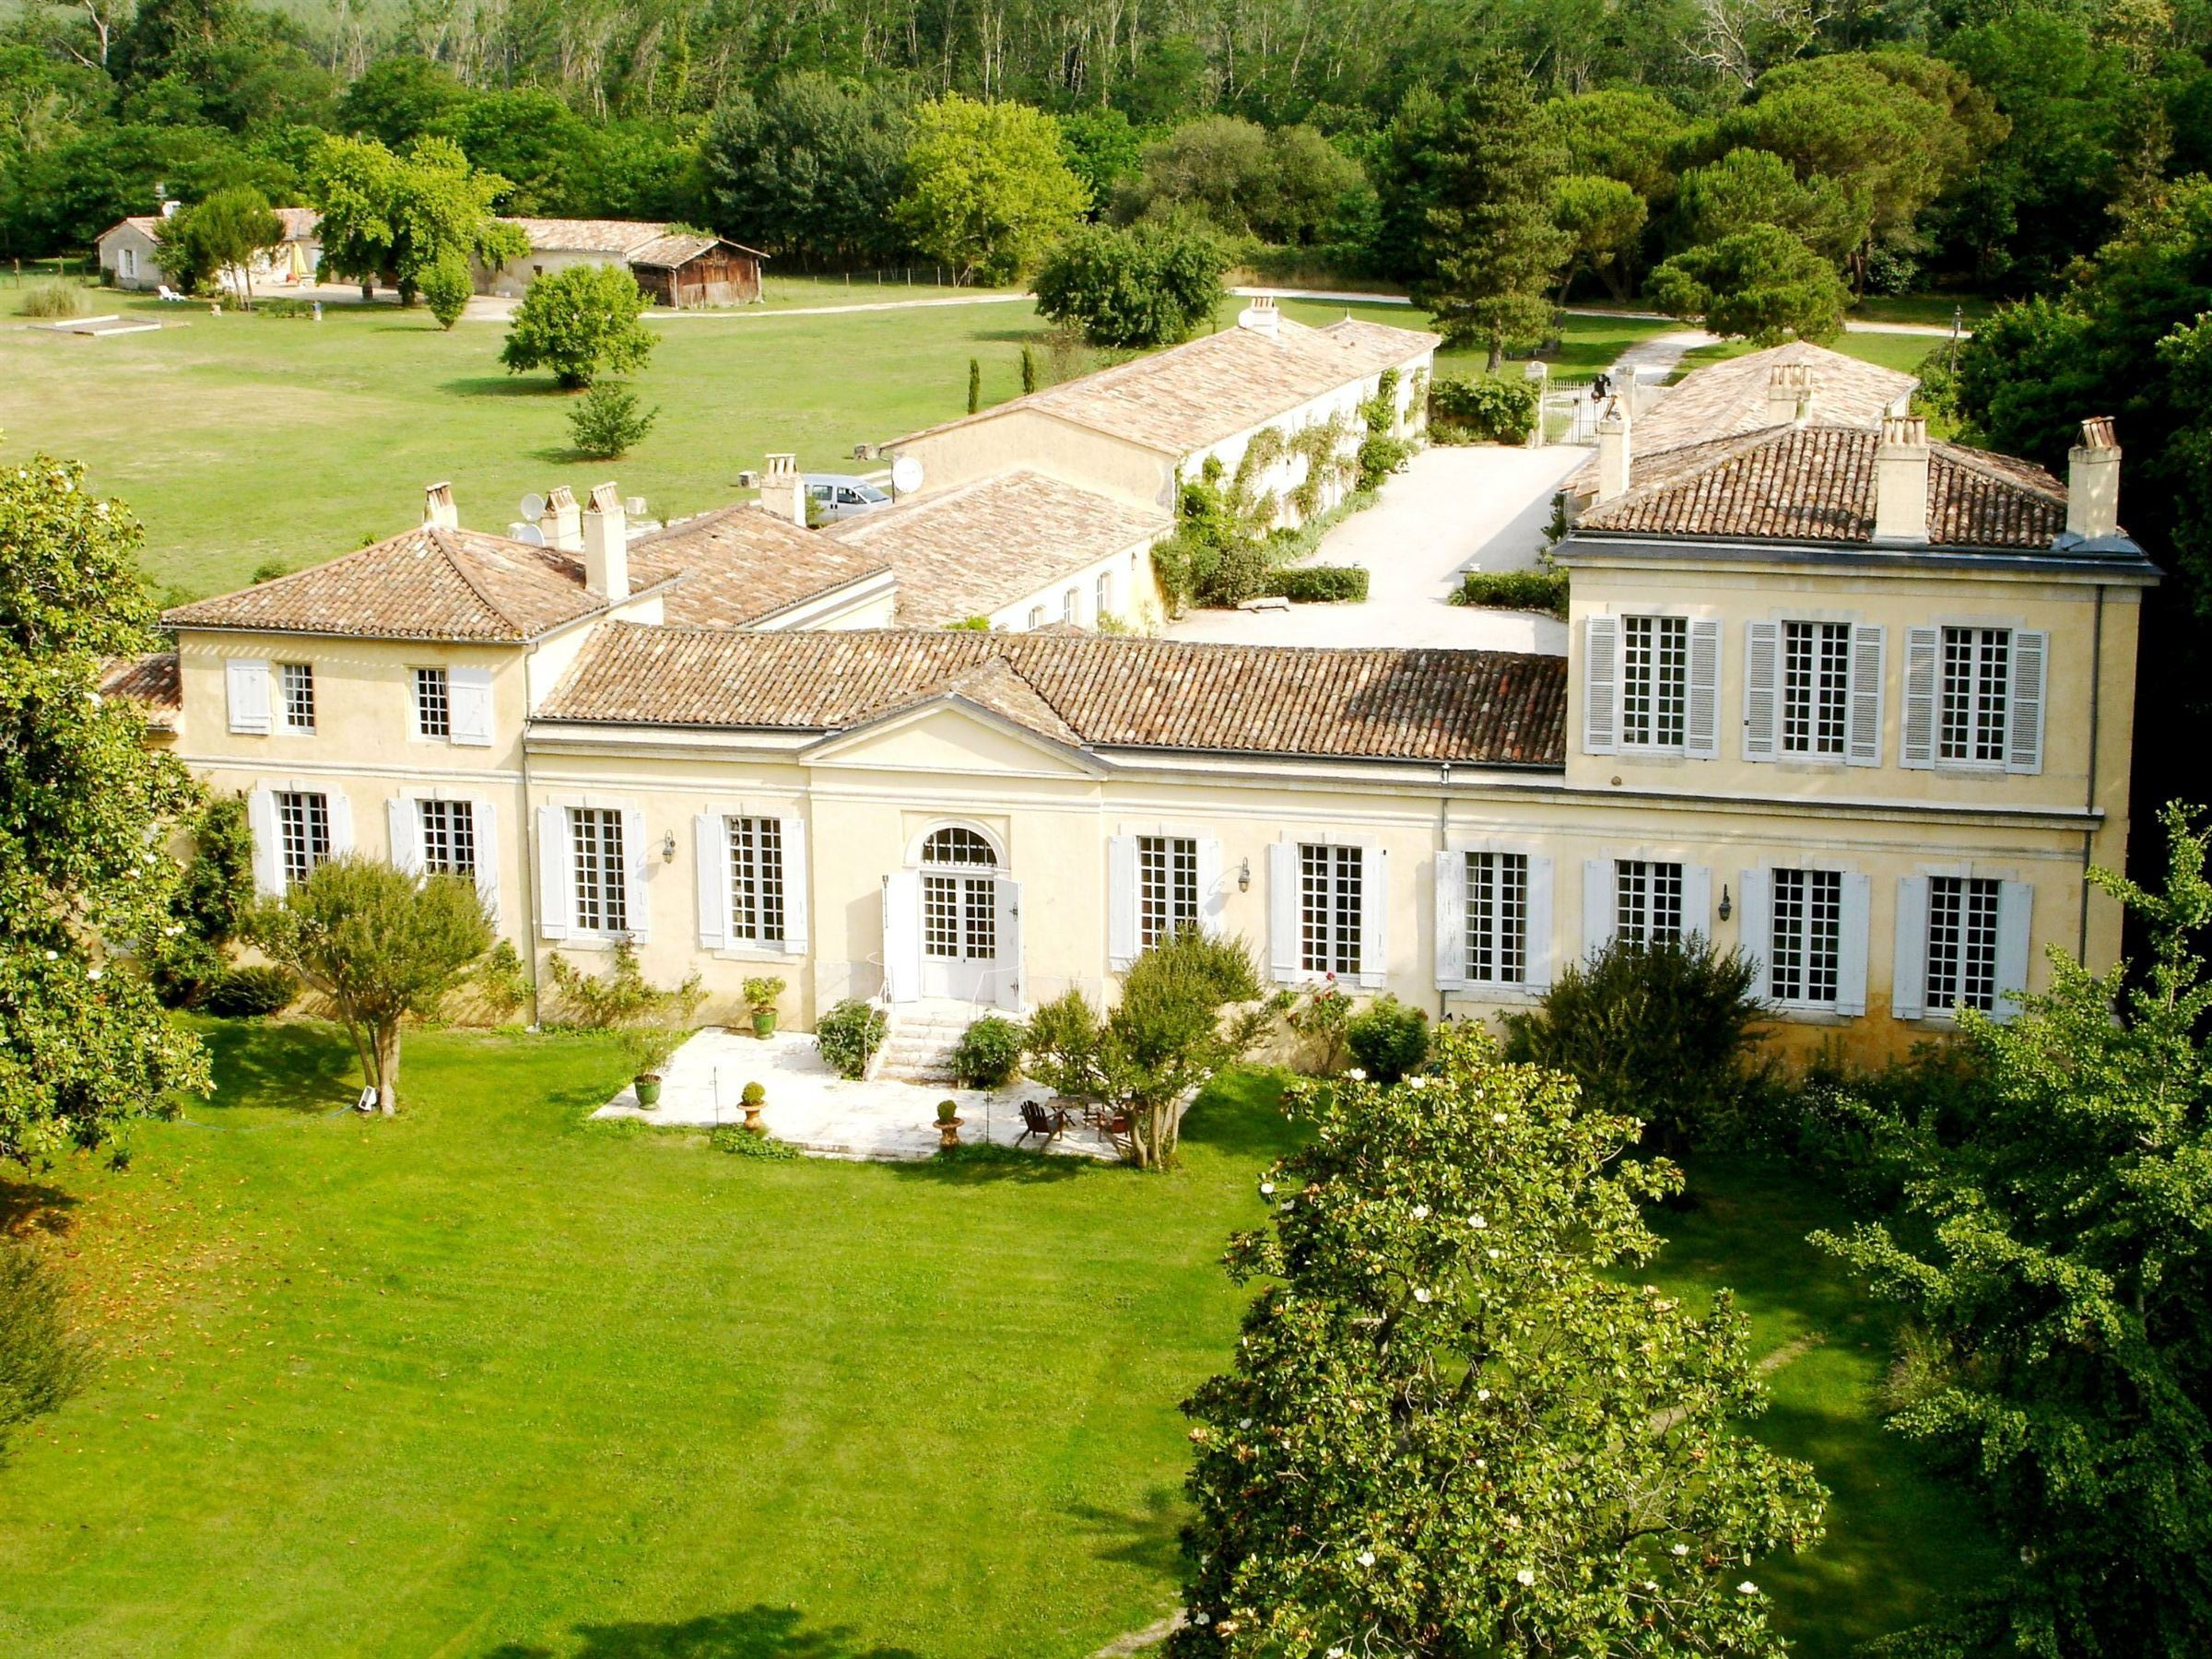 獨棟家庭住宅 為 出售 在 STUNNING ESTATE - 10KM FROM DOWNTOWN BORDEAUX- EASY ACCESS TO THE AIRPORT Bordeaux, 阿基坦, 33000 法國